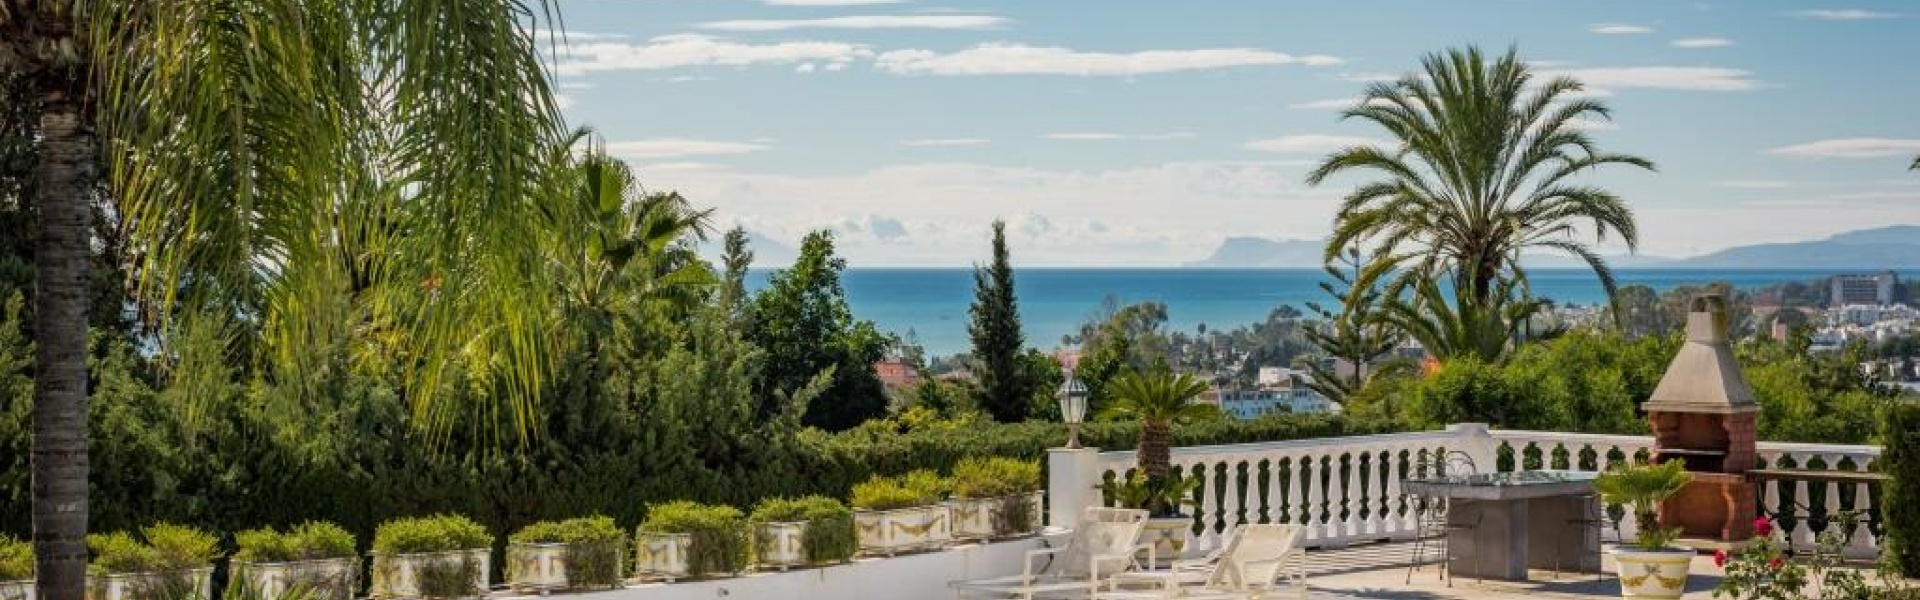 Beachside Villa for sale at El Paraiso Marbella